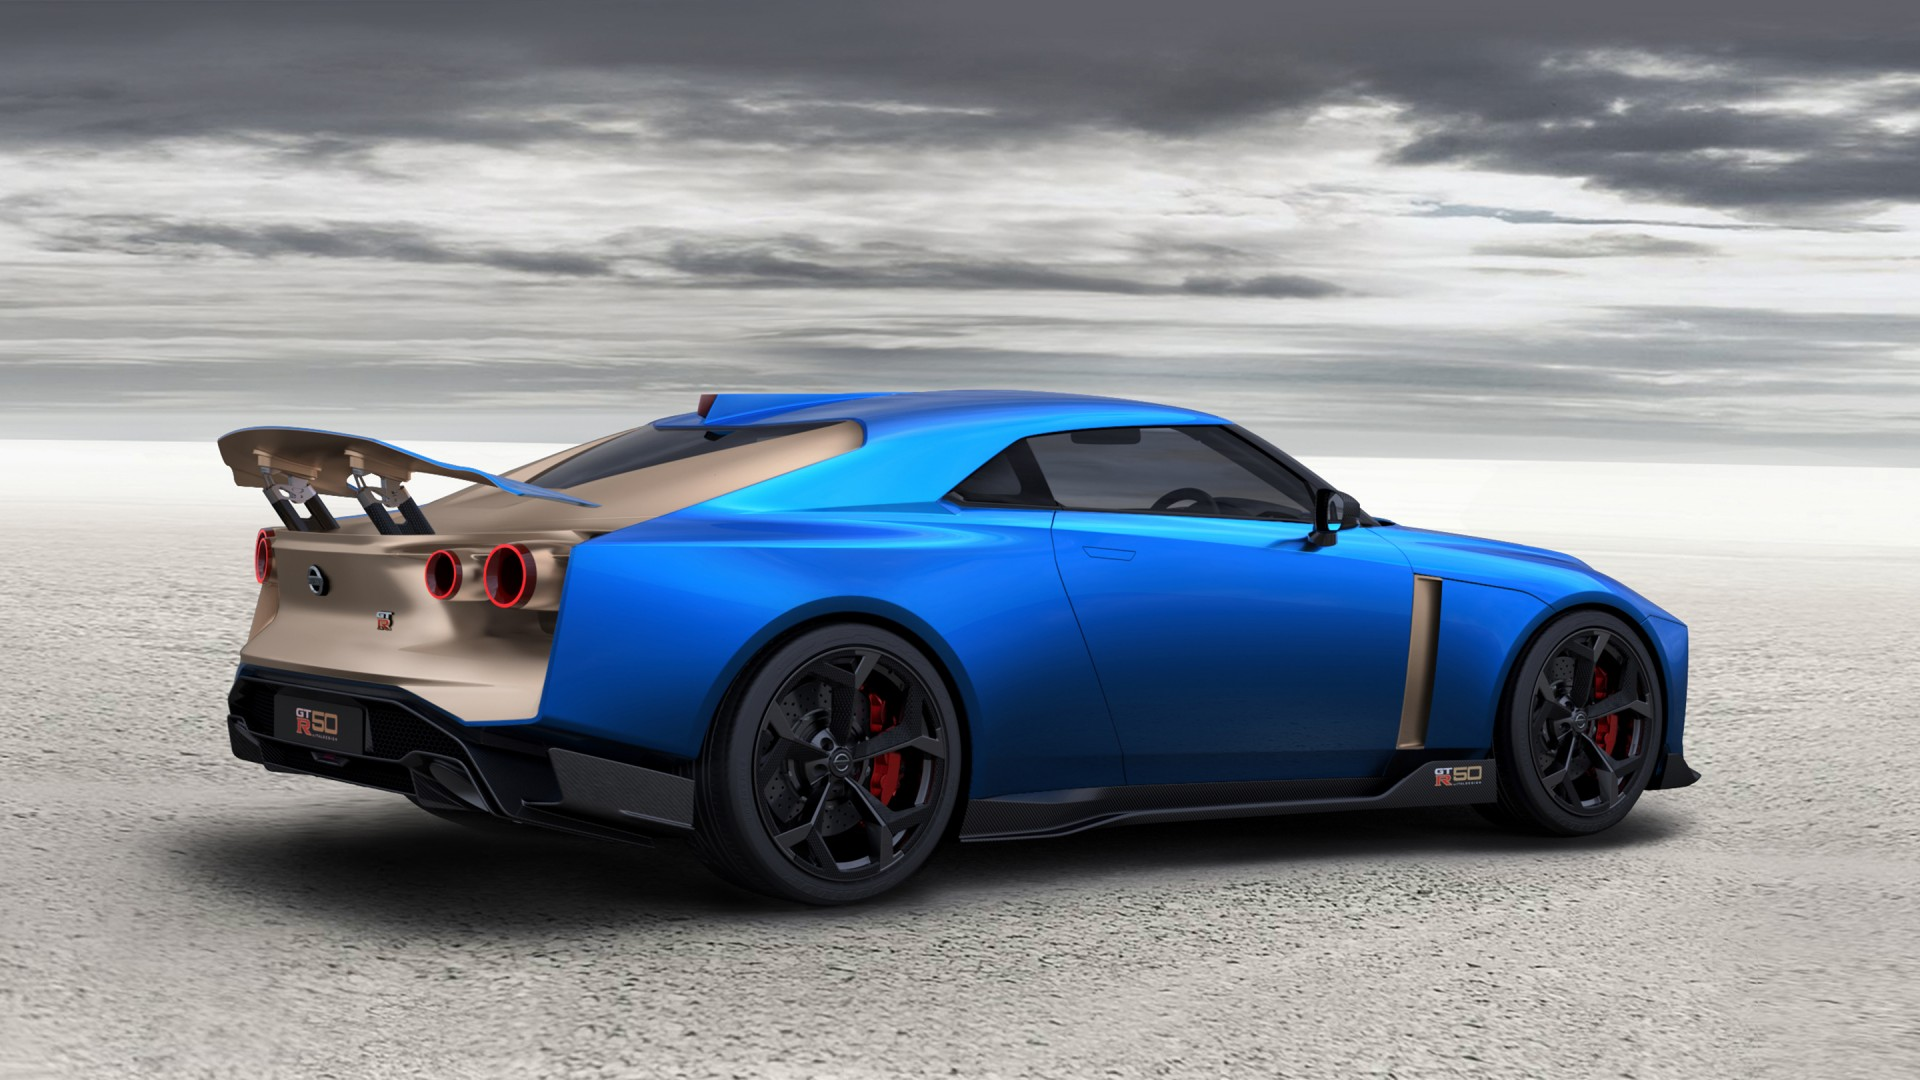 Nissan GT-R50 2019 2 Wallpaper | HD Car Wallpapers | ID #11679